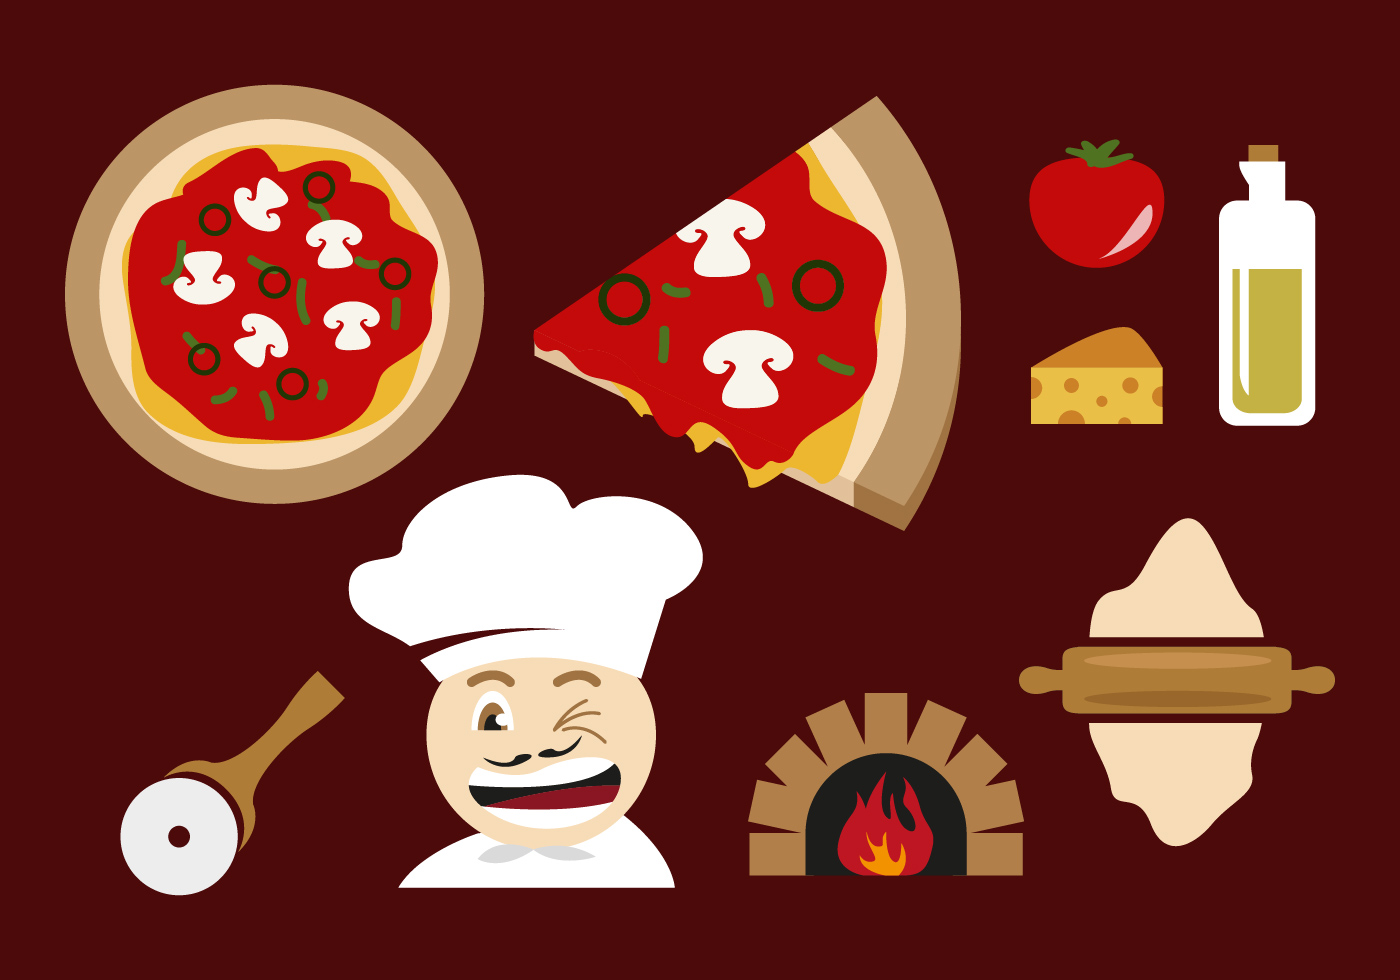 Pizza Oven Illustrations Vector - Download Free Vector Art ...